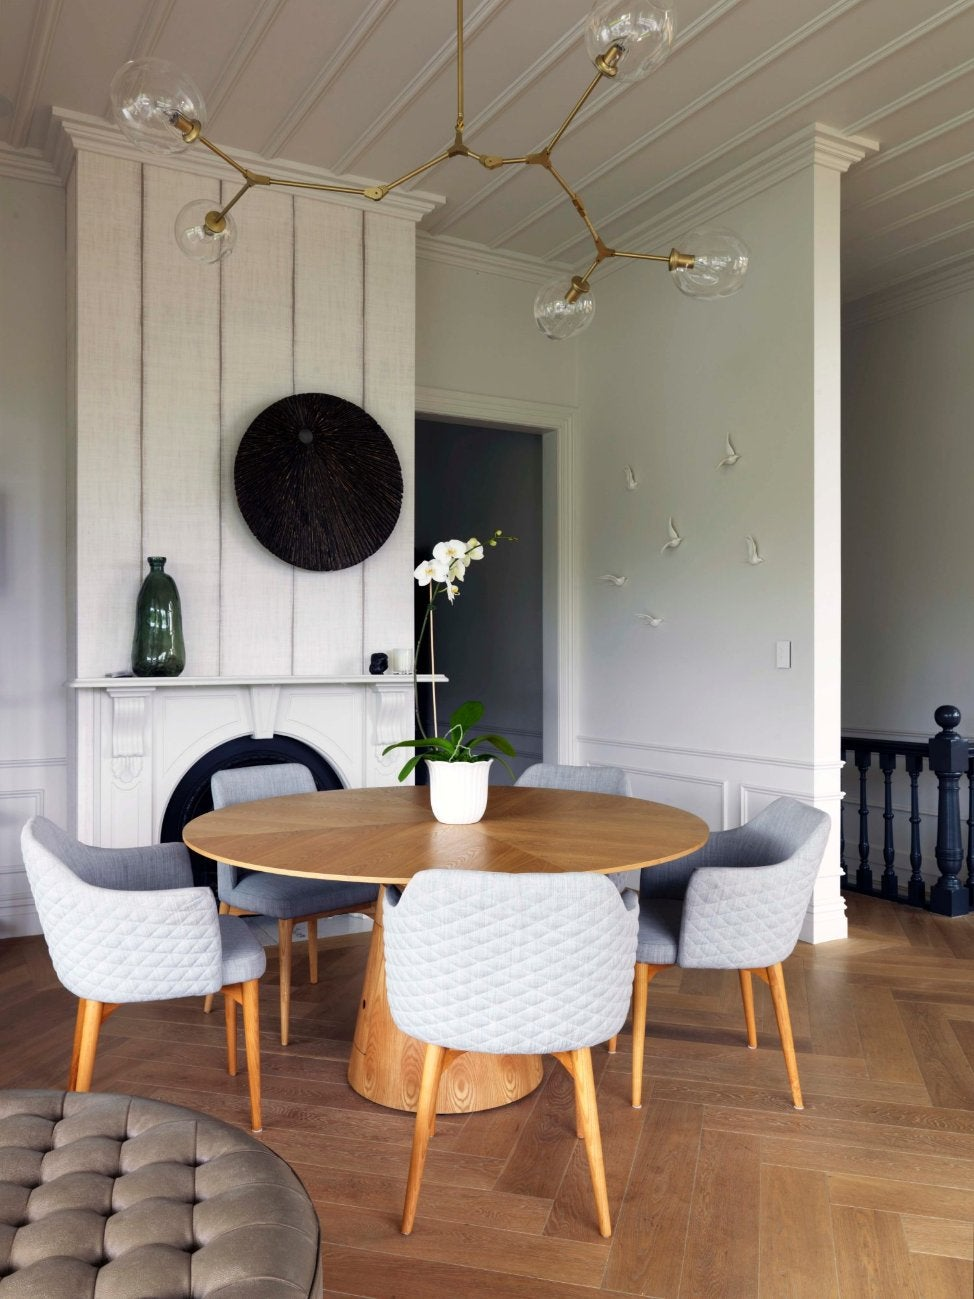 Picture of: Image Home And Property Design Inspiration Products News And Advice Homed Stuff Co Nz